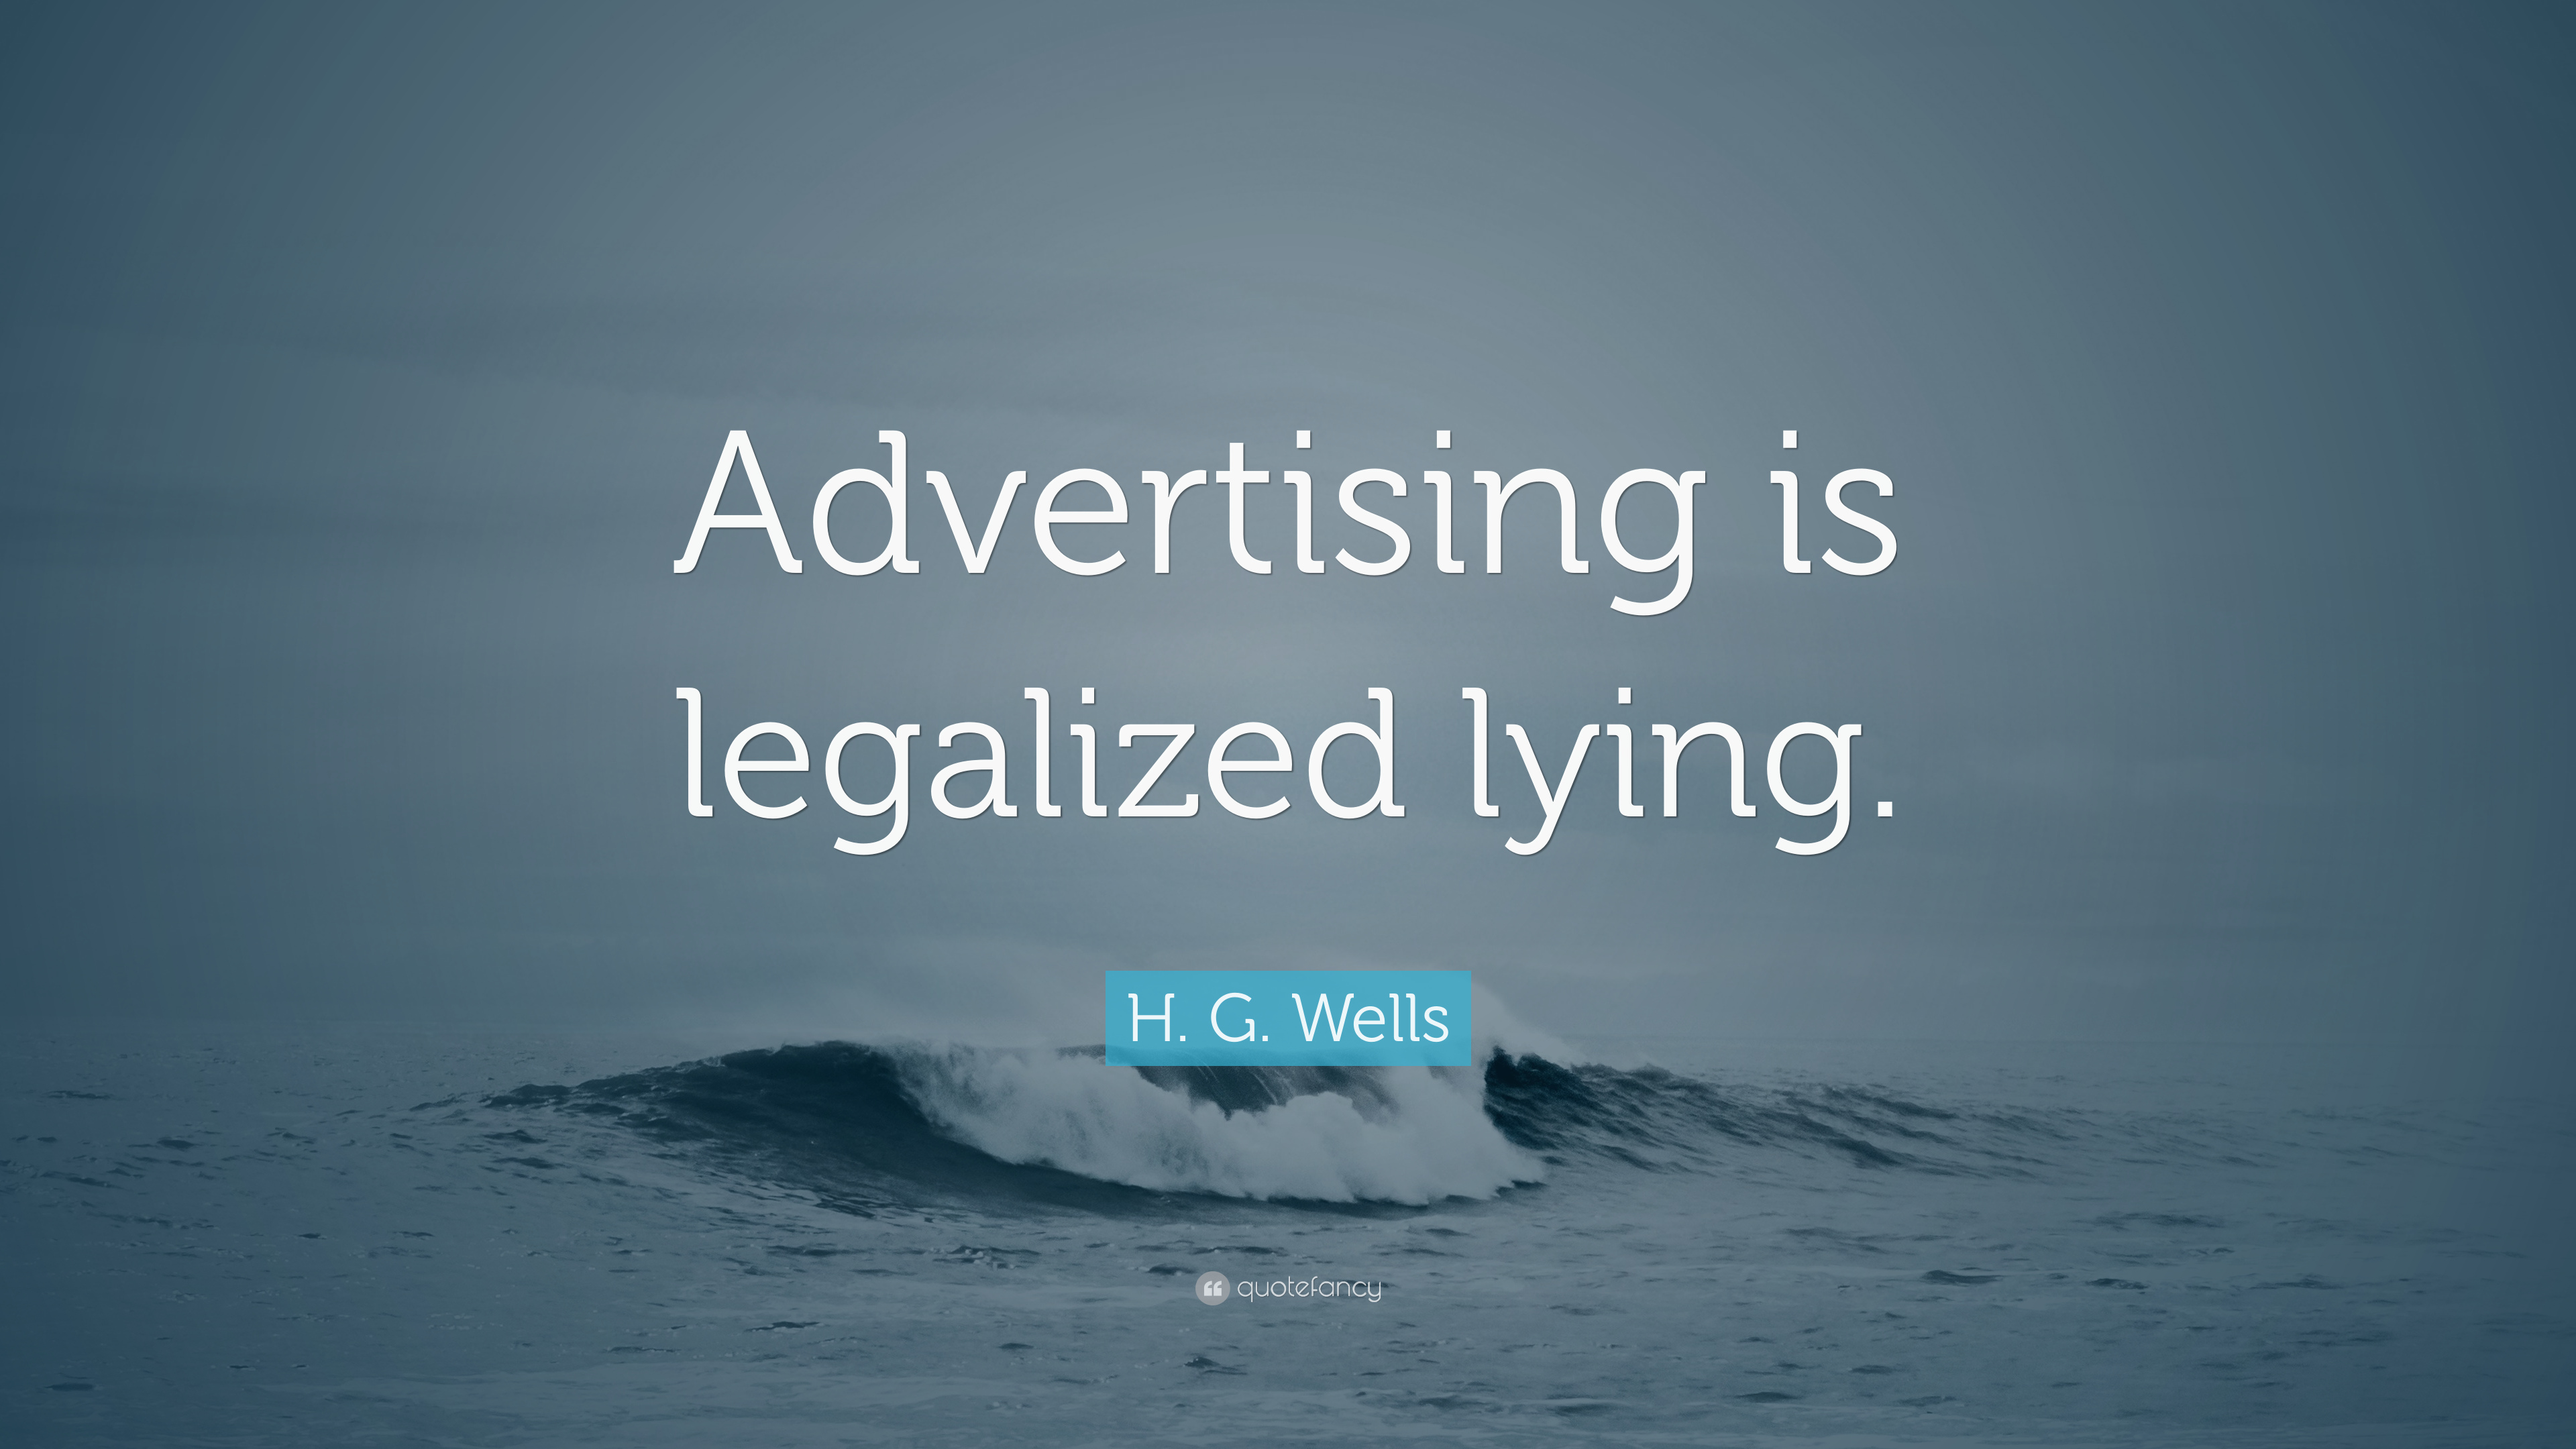 advertising is a legalised form of lying Advertising is a legalised form of lying discuss, advertising a legalized form of lying, advertising is the legalized form of telling lies, advertising is a legalized form of lying discuss file type ppt.